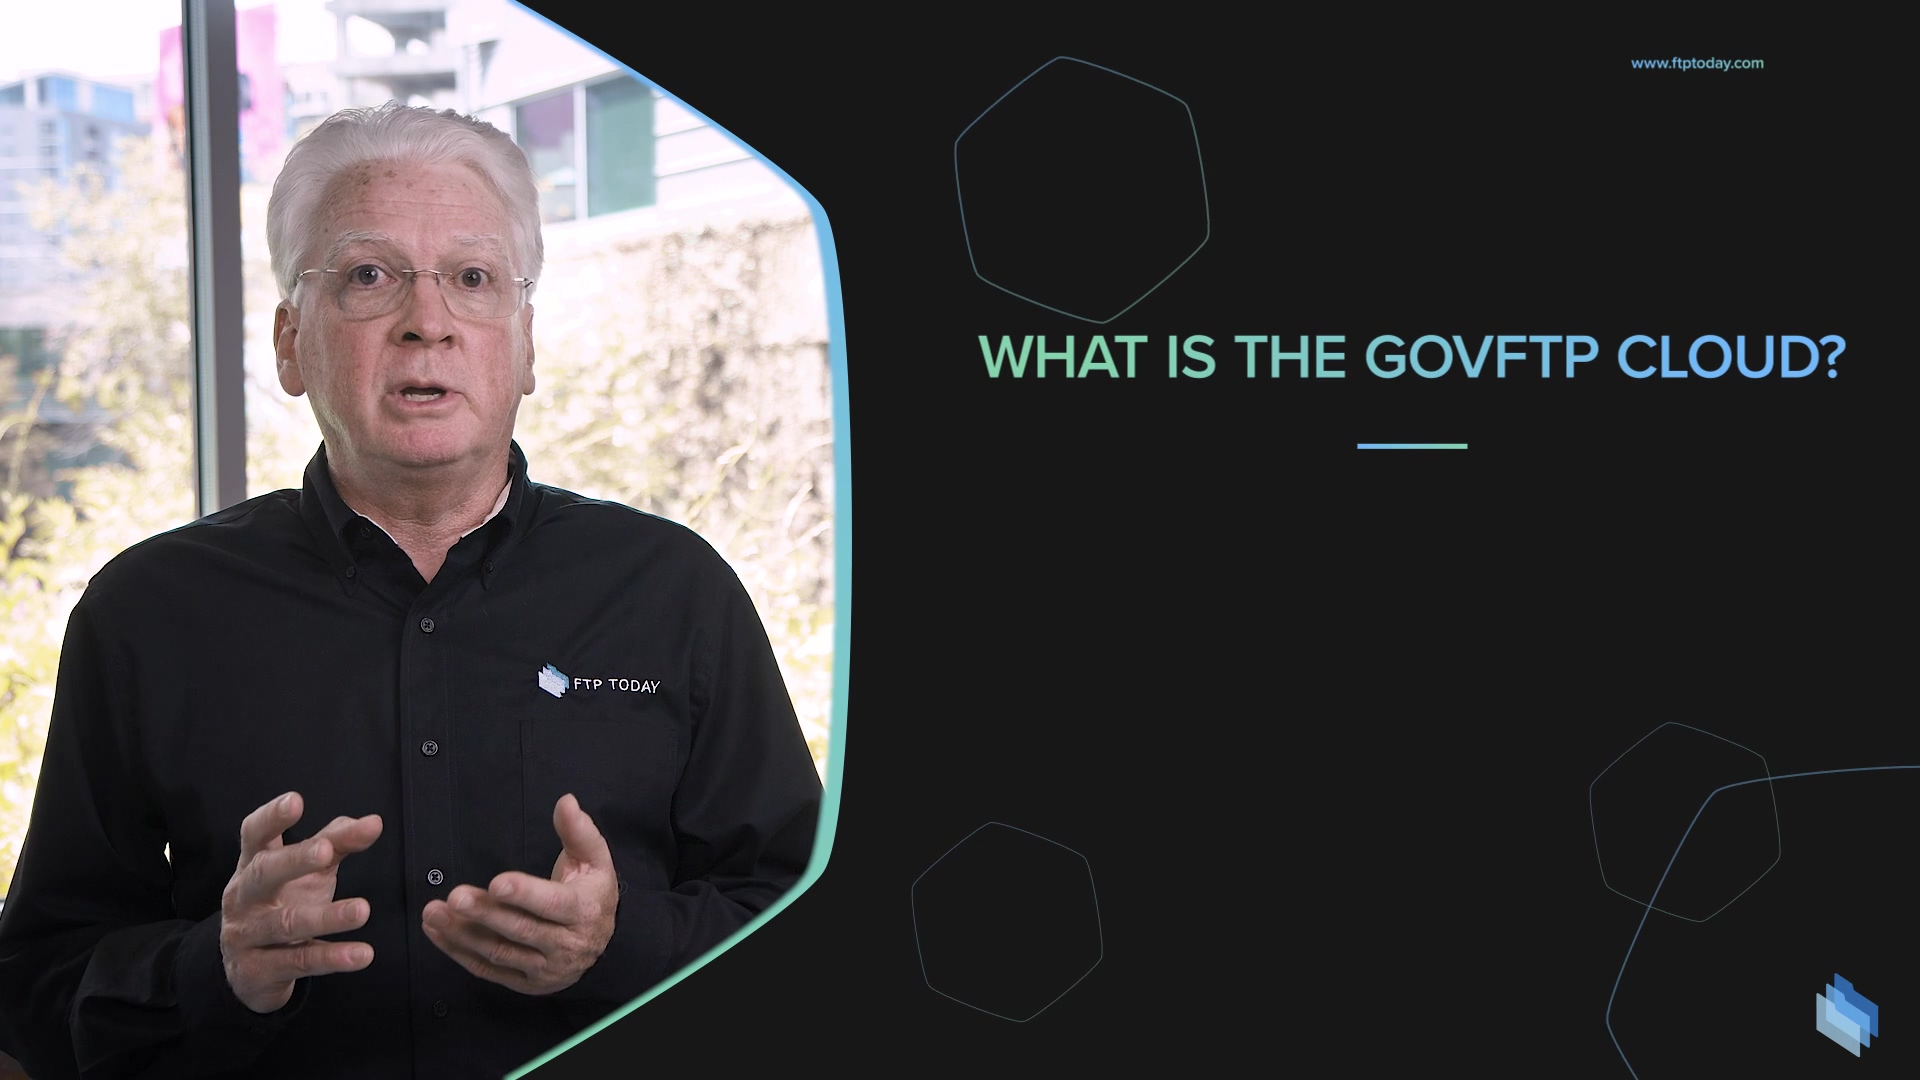 FTP Today GOVFTP Cloud Product Video